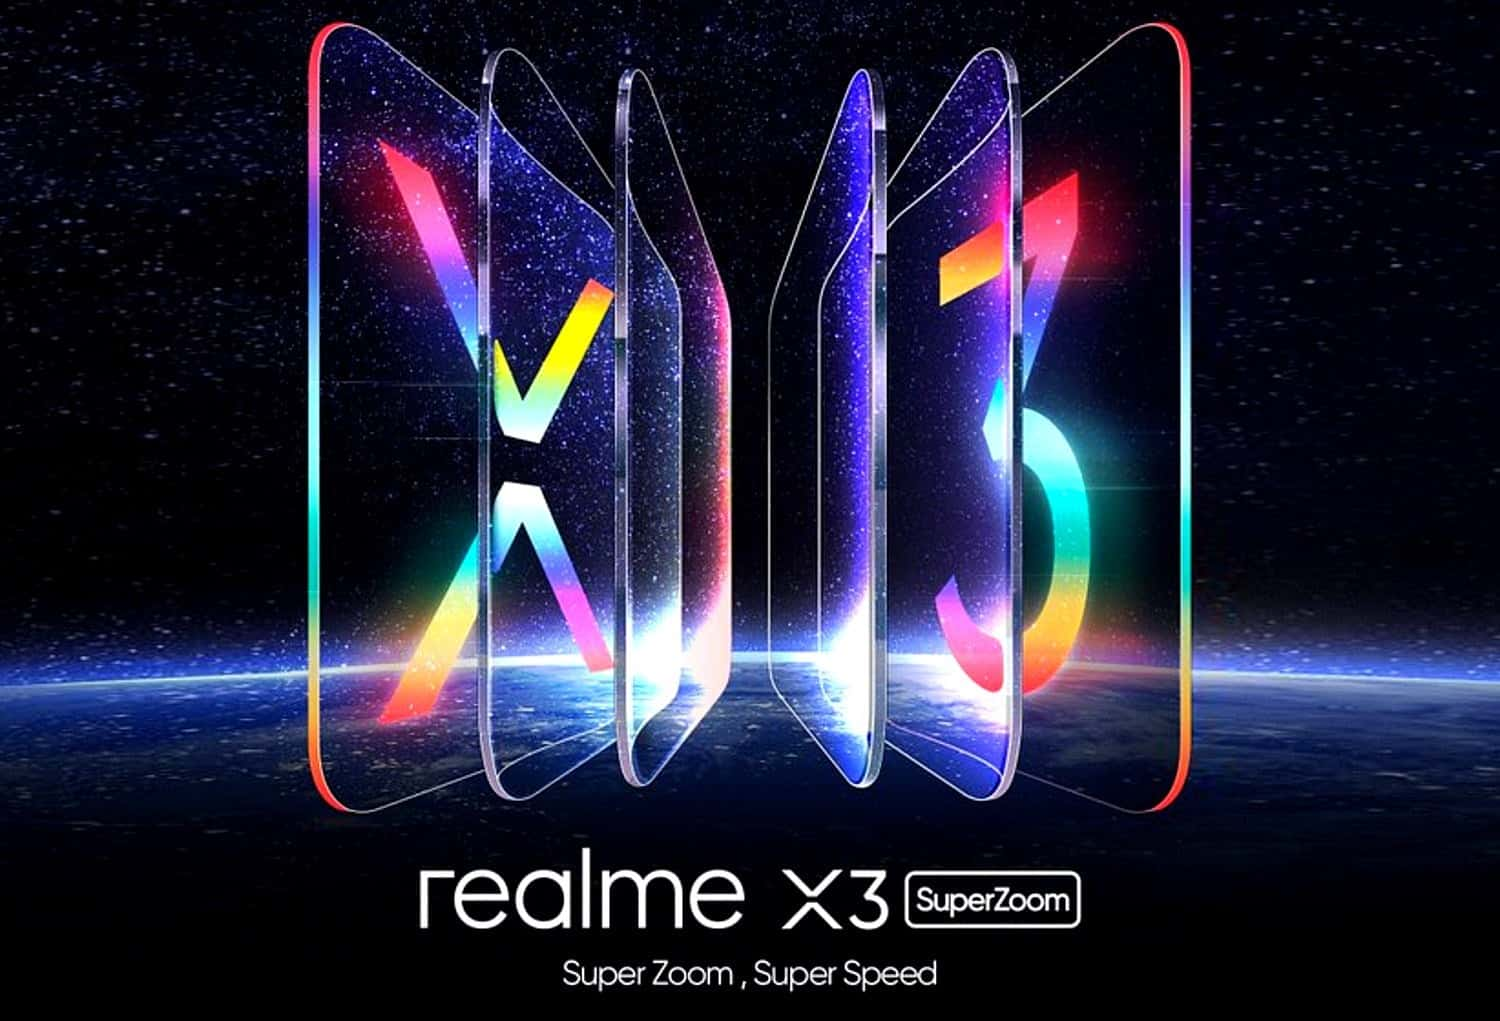 Realme X3 Superzoom Will Go Official In Thailand On May 27